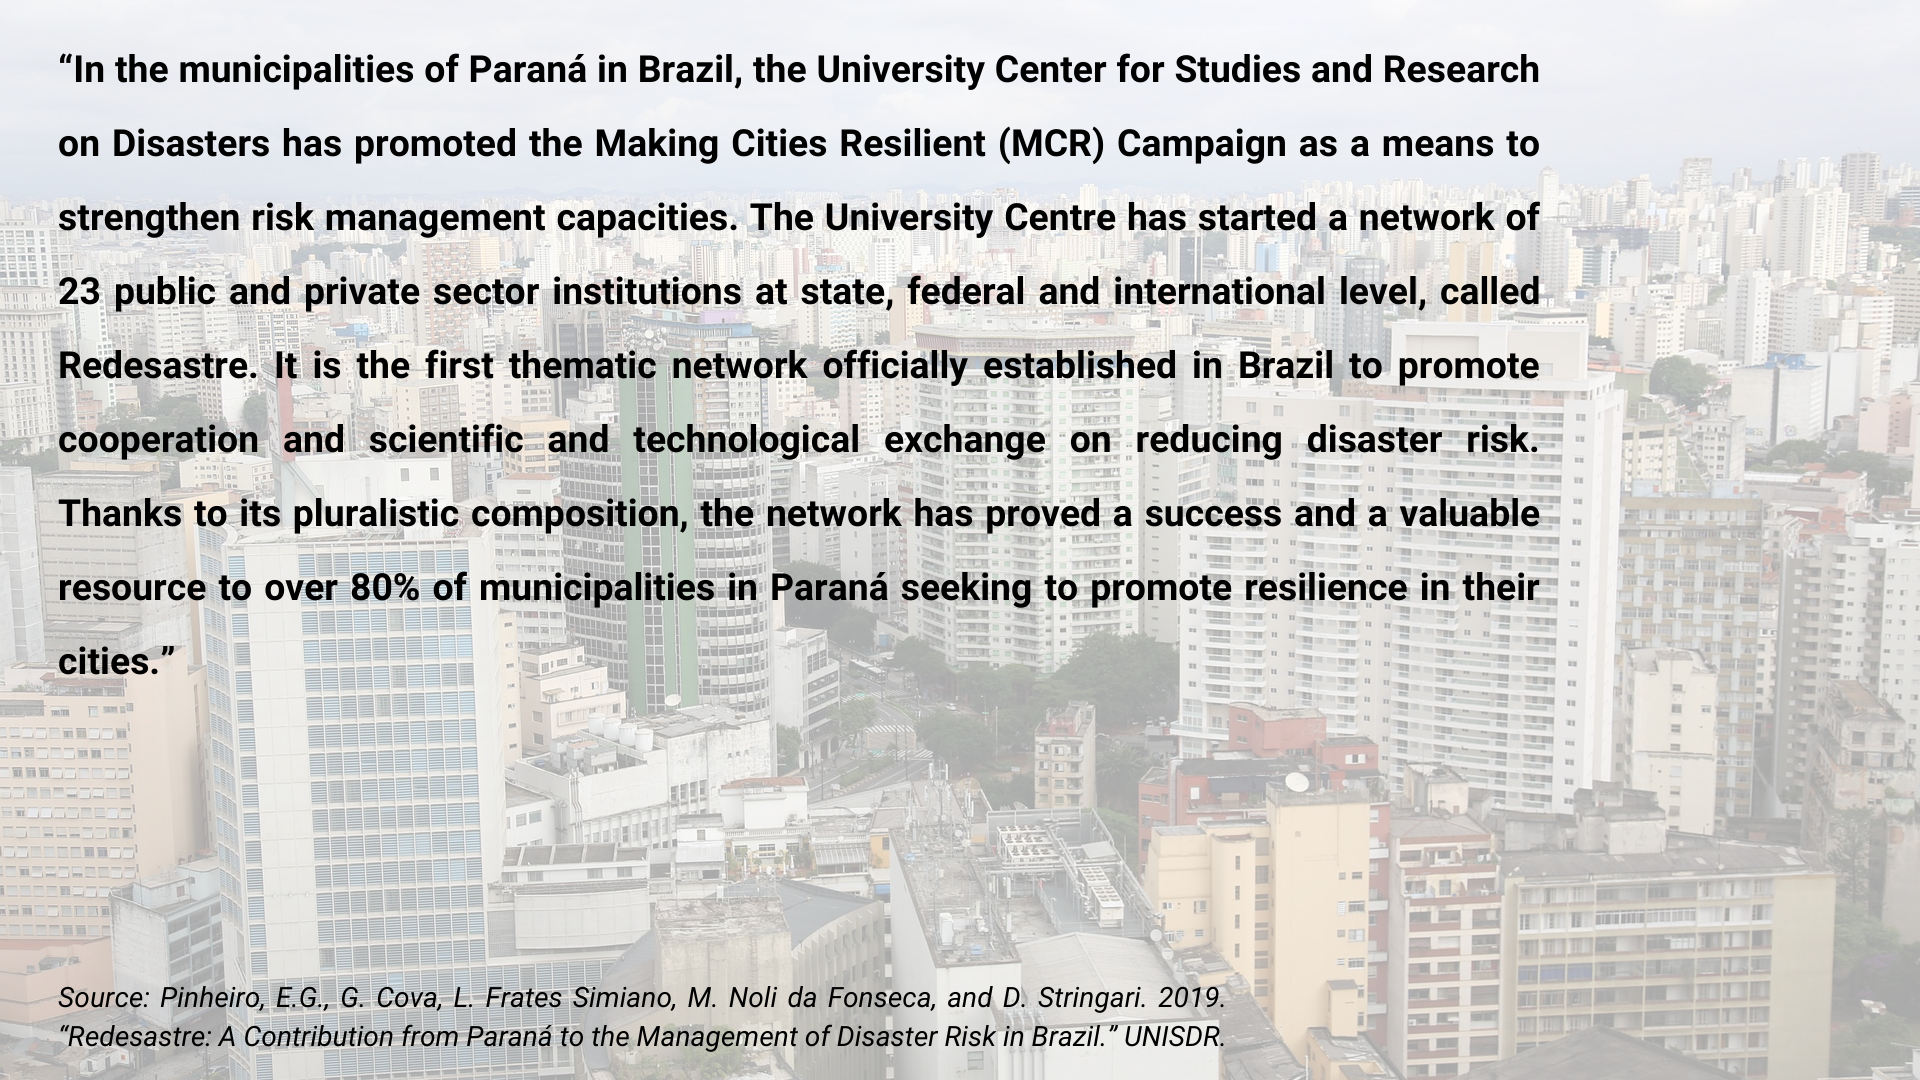 In the municipalities of Paraná in Brazil, the University Center for Studies and Research on Disasters has promoted the Making Cities Resilient (MCR) Campaign as a means to strengthen risk management capacities.